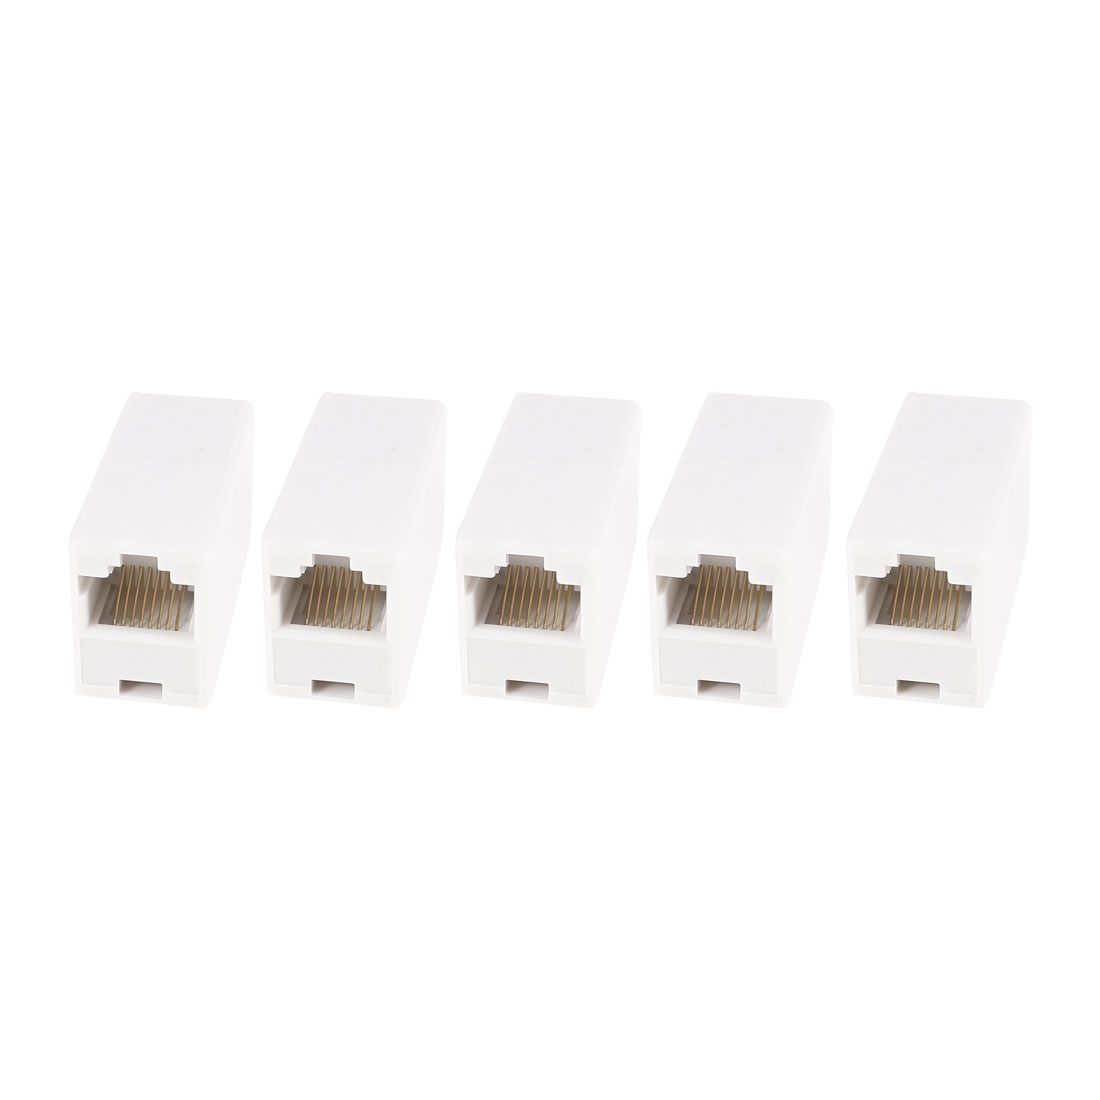 5 Pcs RJ45 8P8C Female to Female Network Cable Inline Coupler Connector